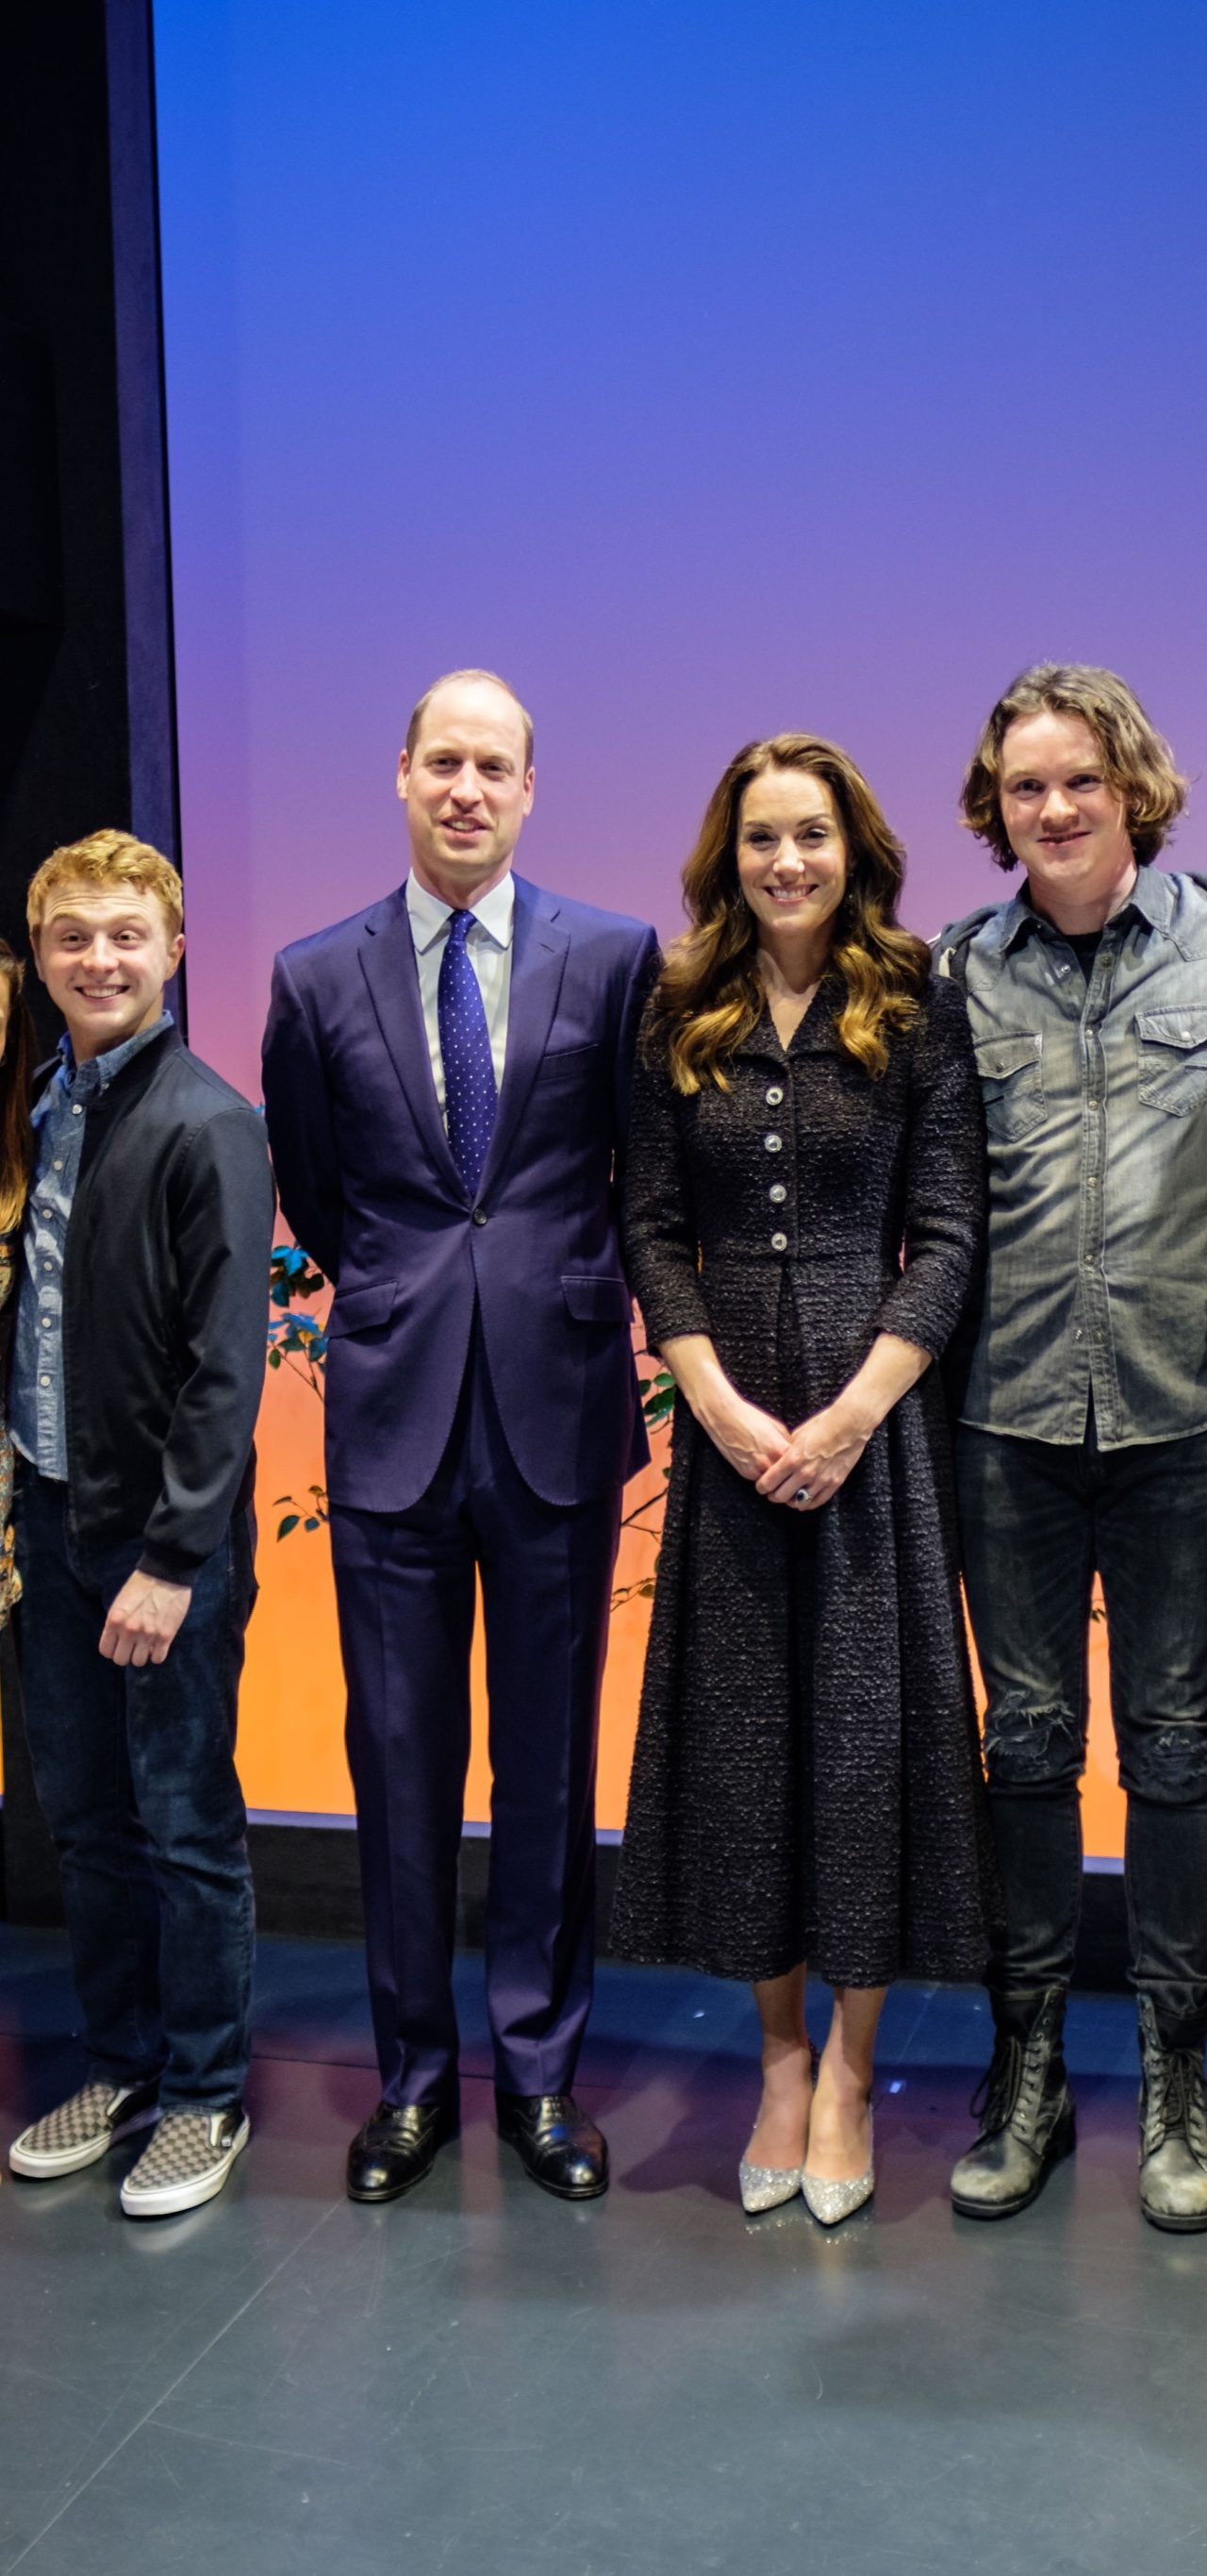 The Duke and Duchess of Cambridge attended a performance of 'Dear Evan Hansen'.